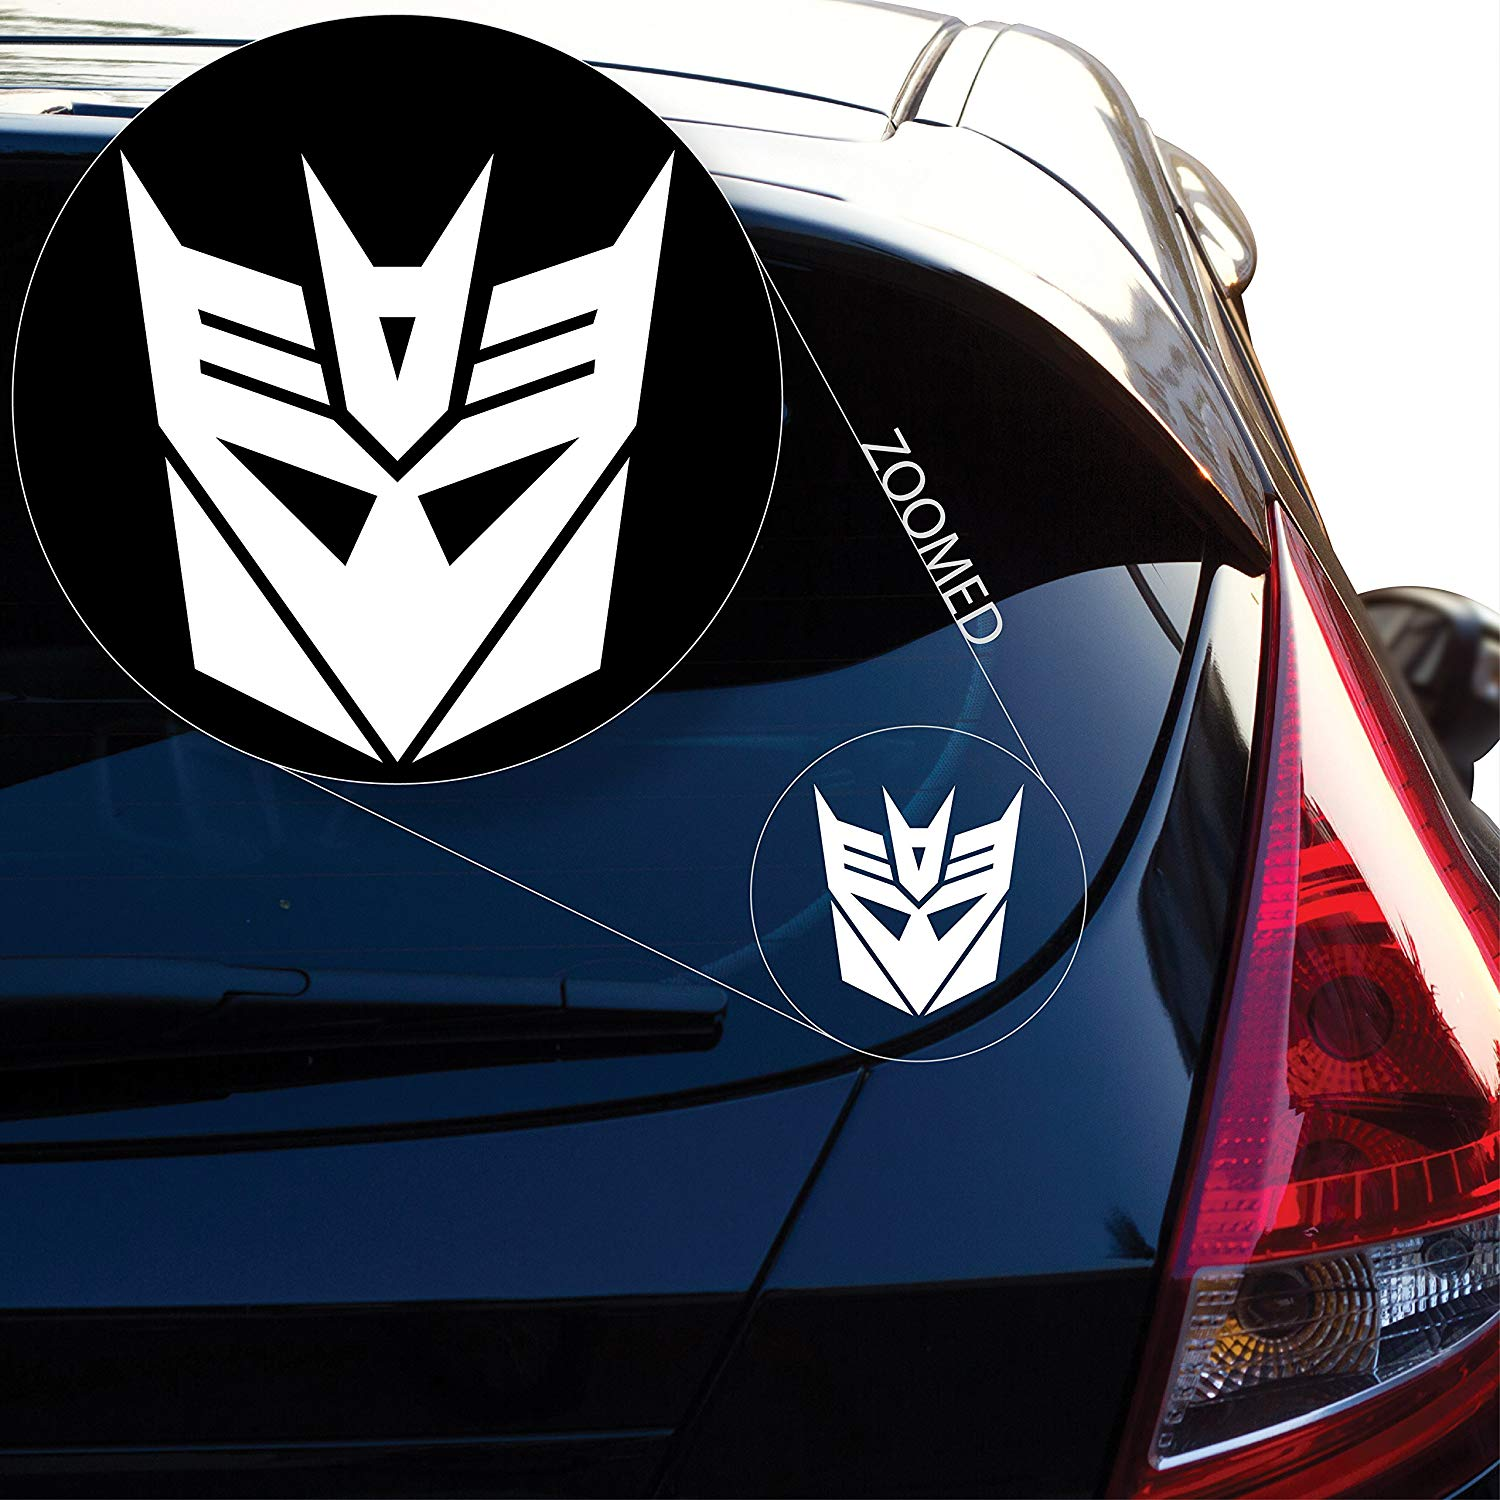 Graphics Decepticon from Transformer Decal Sticker for Car Window, Laptop and More